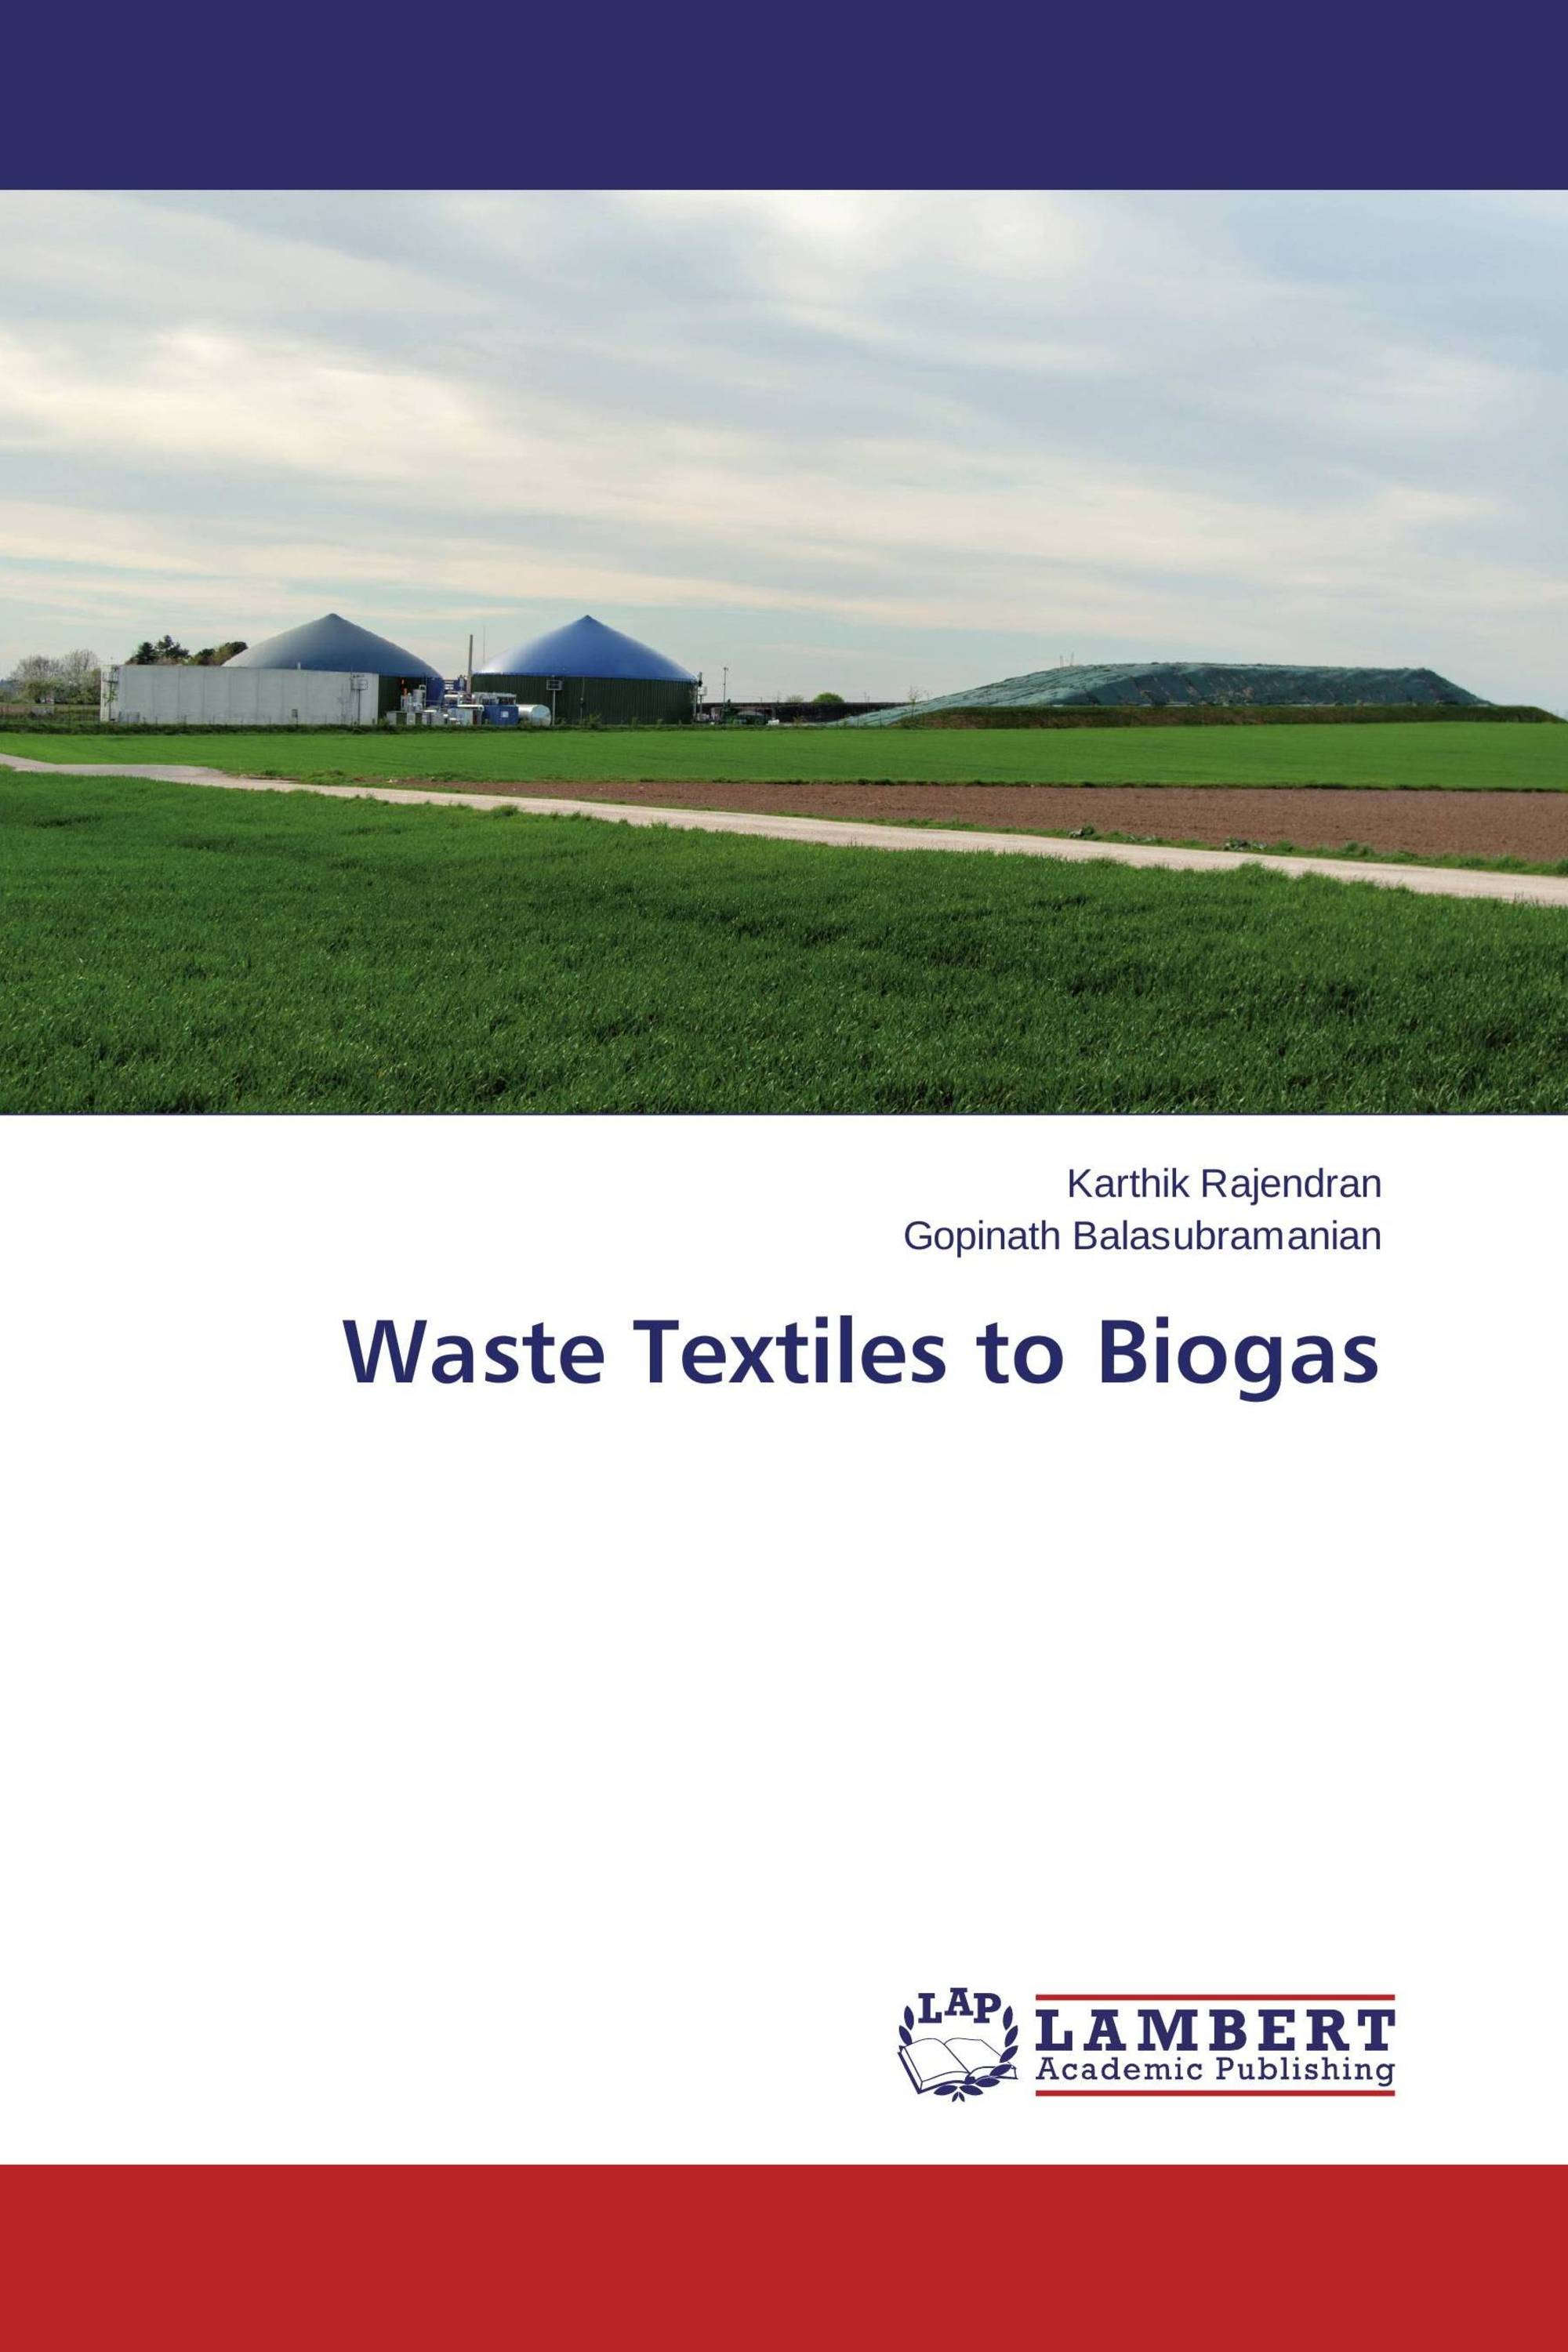 Waste Textiles to Biogas